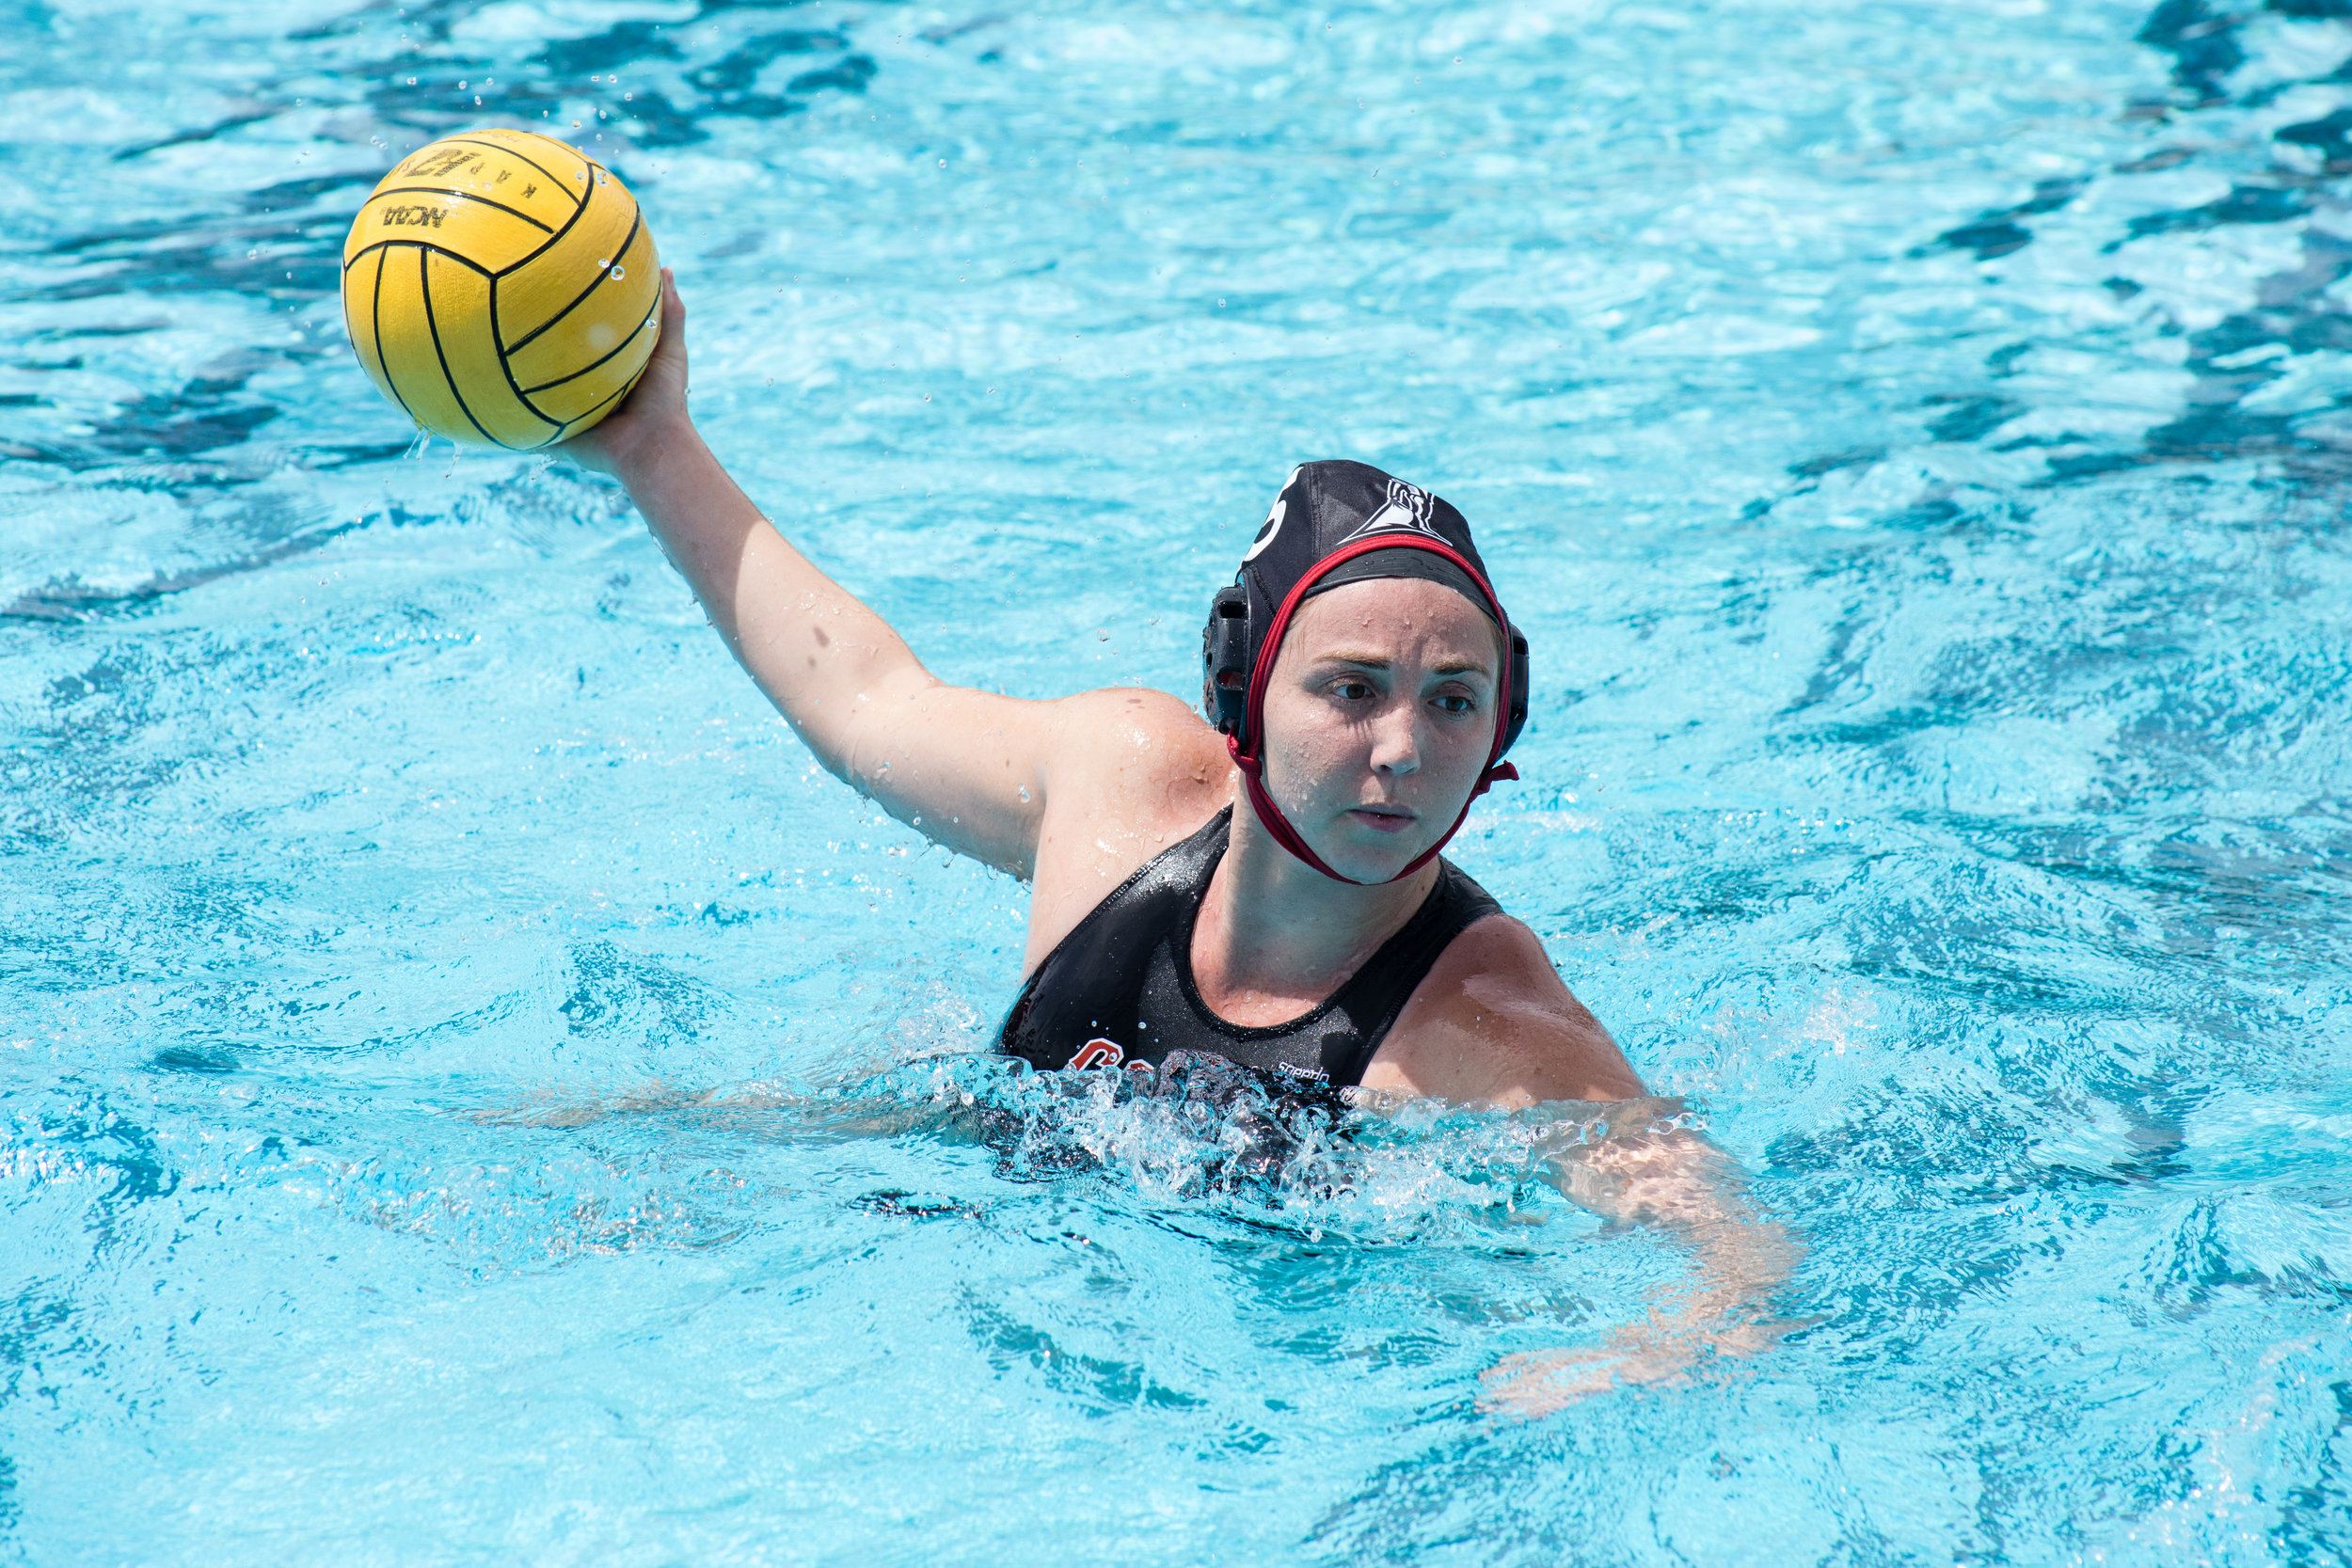 2018_04_15 - Women's Water Polo vs Hawaii (max reso)-21.jpg